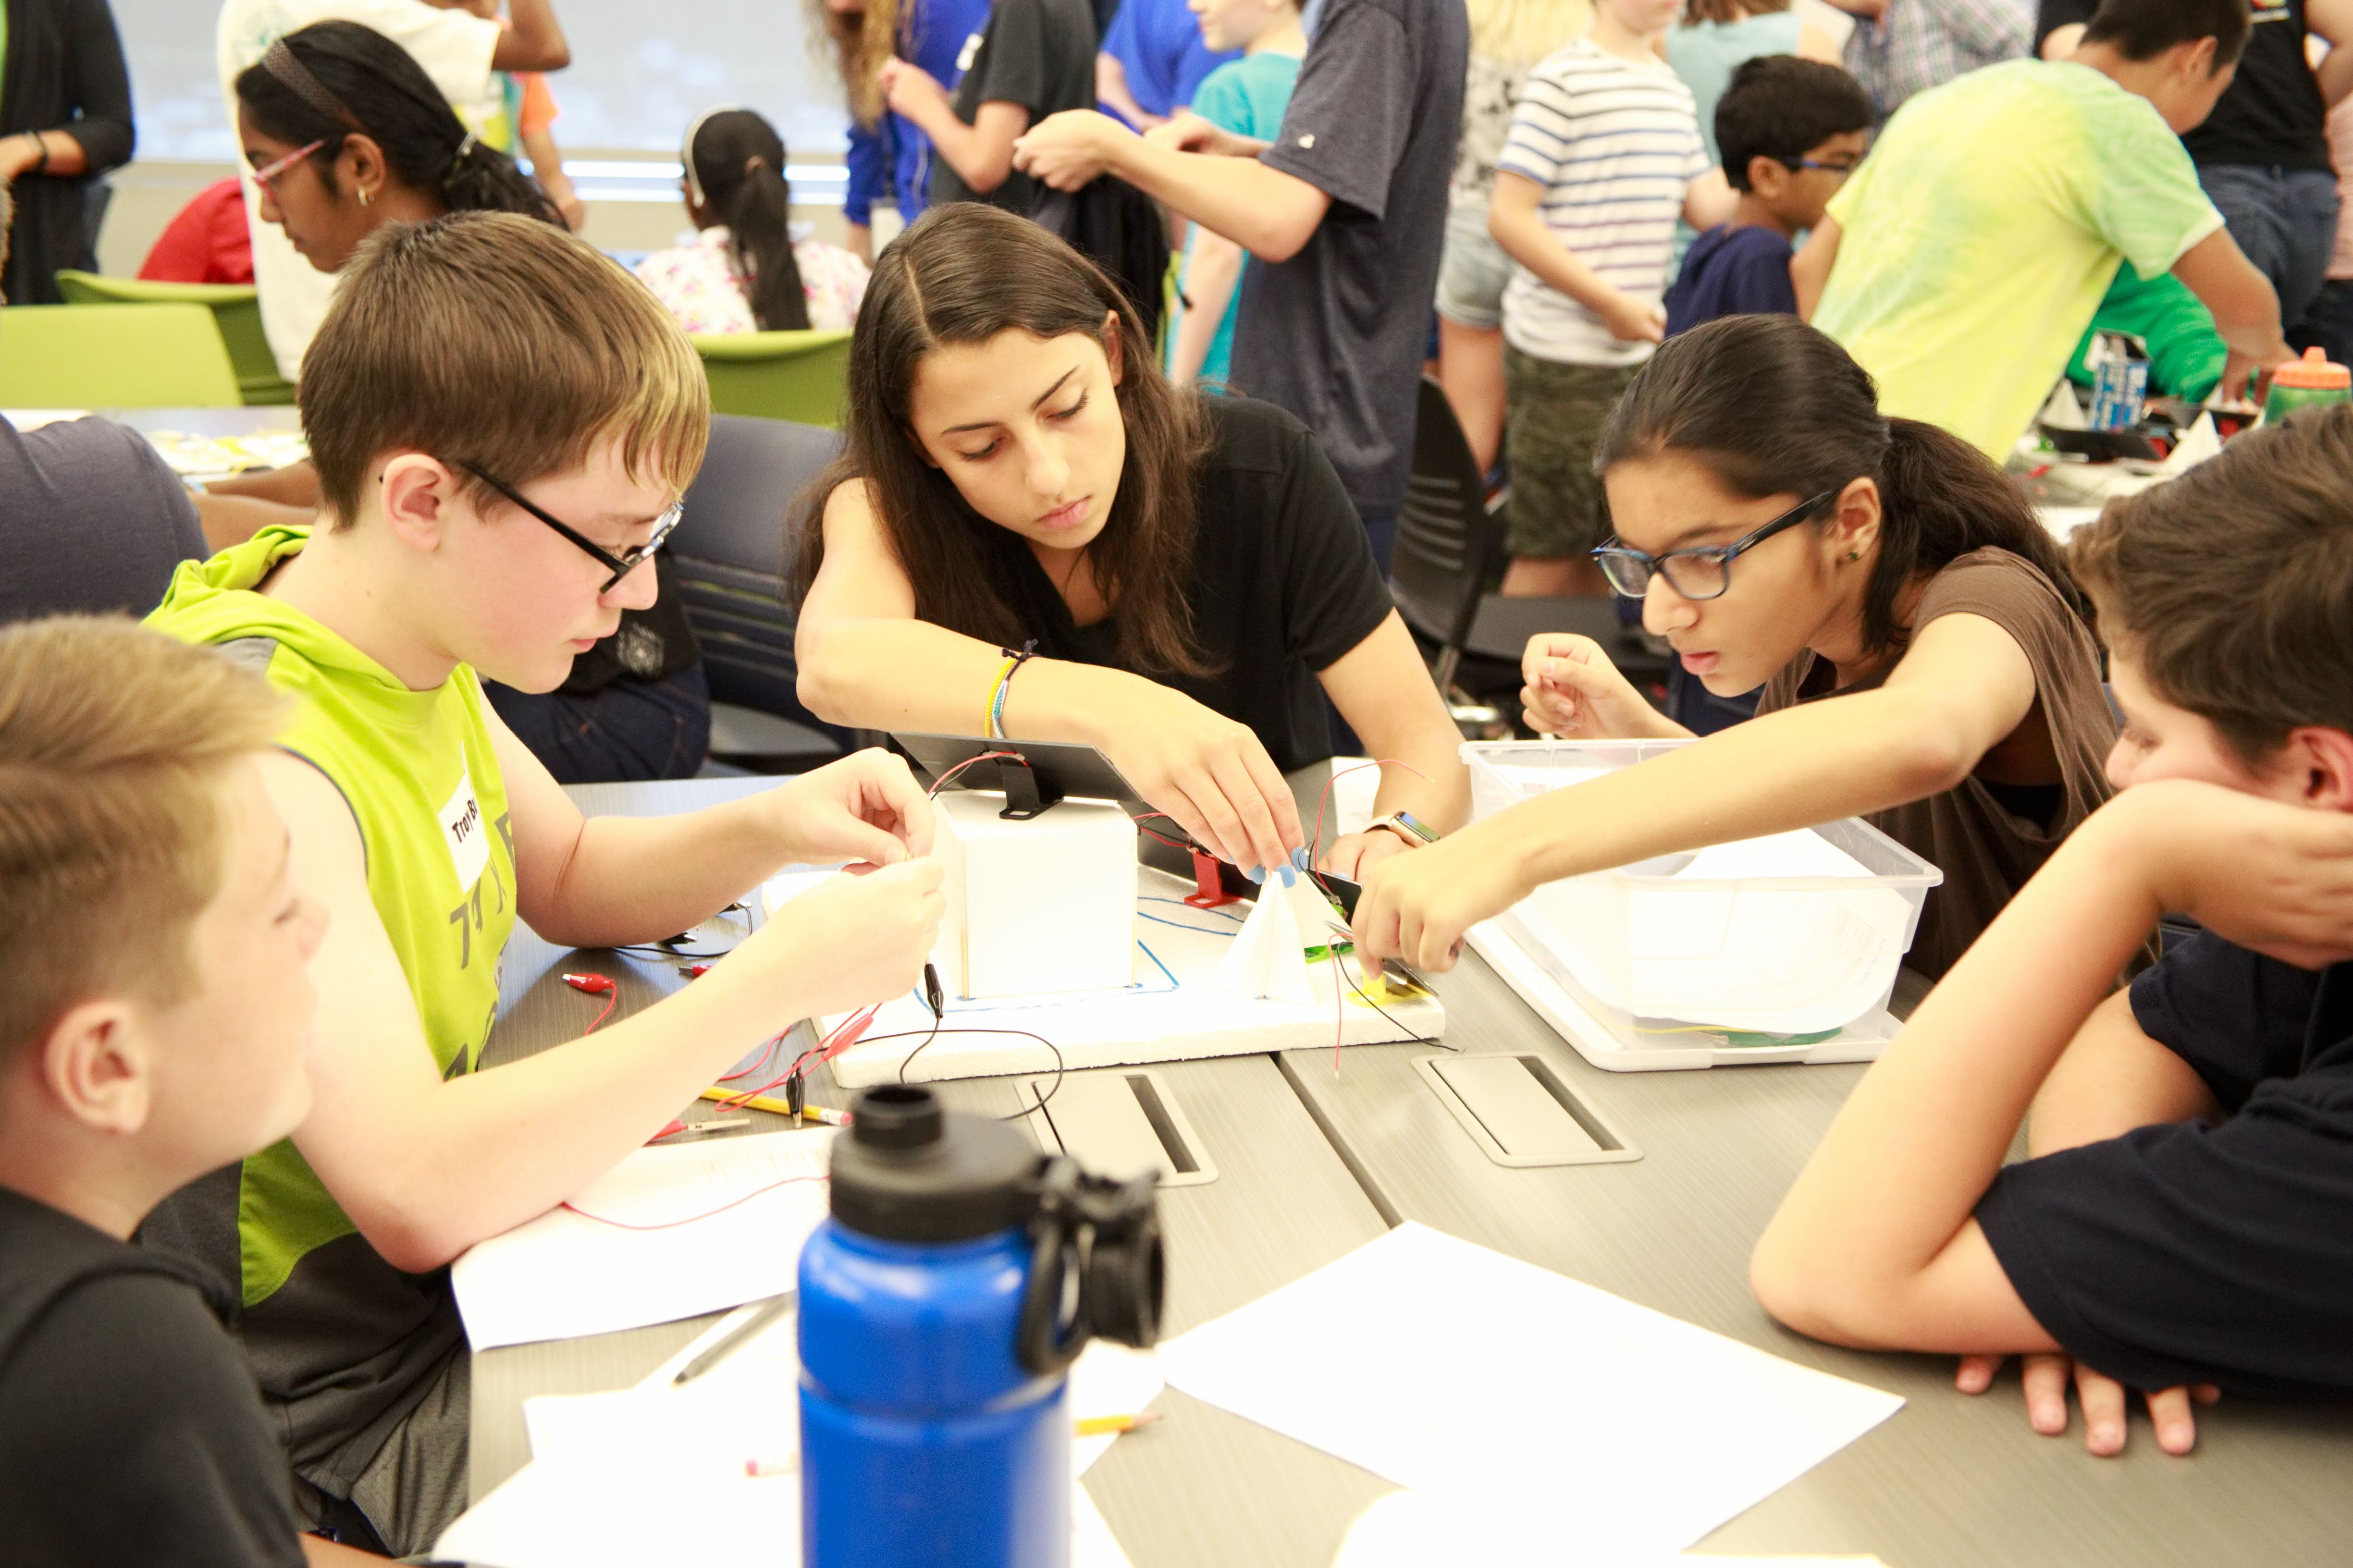 photo of students working on a group activity around a table